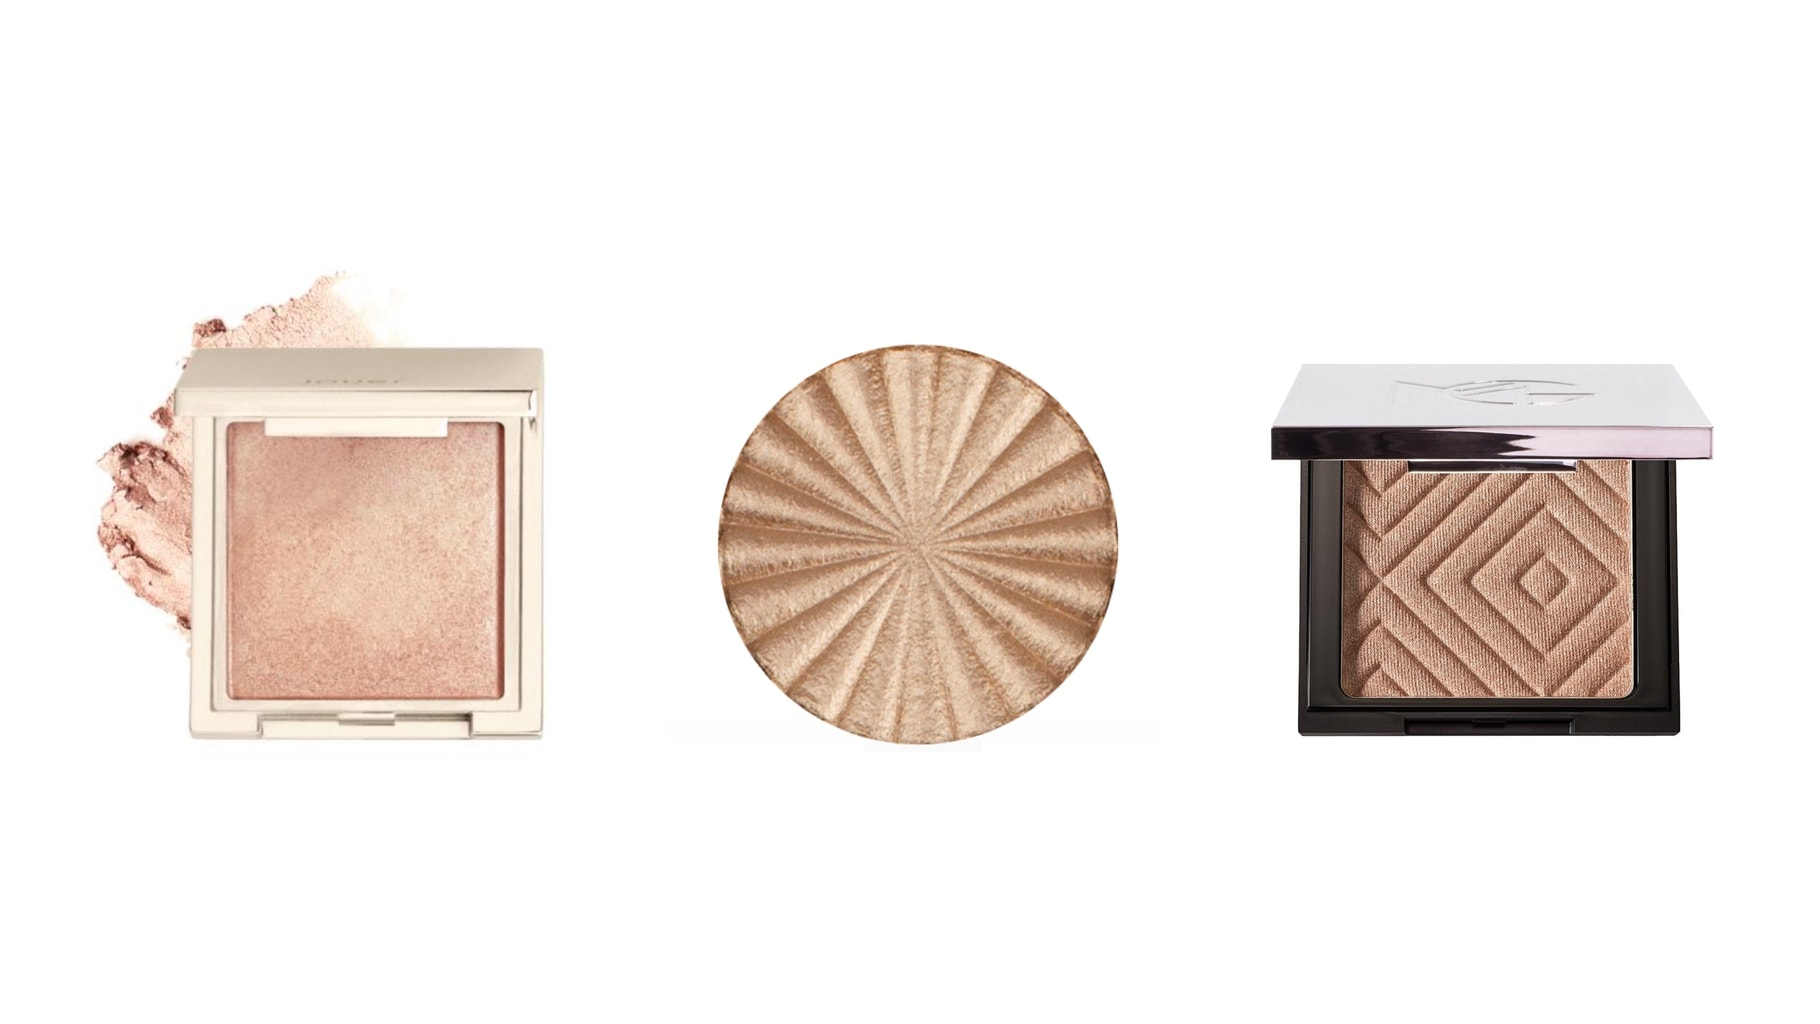 Fall makeup: Golden highlighters are gorgeous for the fall season